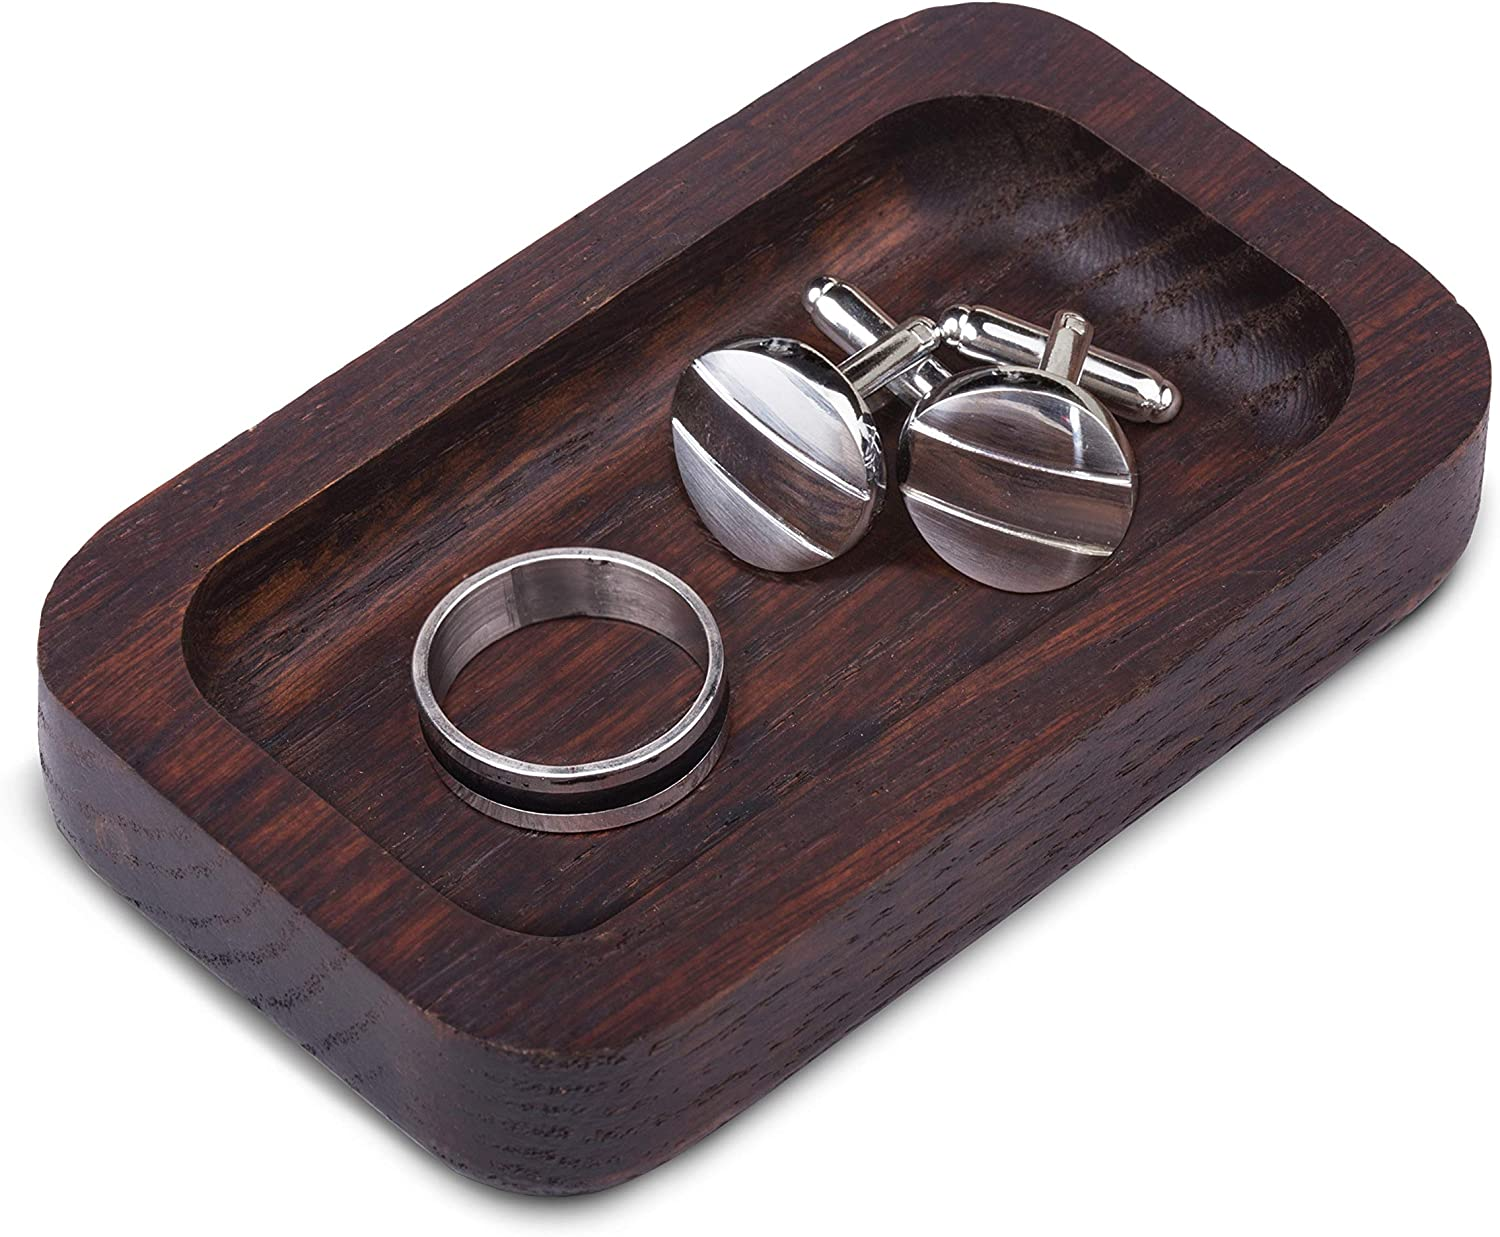 Mens Wood Ring Holder – Engagement Anniversary Wedding Gifts for Men or Husband Unique Cool Men s Jewelry Gift Accessories Birthday Gift Ideas For Him Men s Ring Tray Dish Trinket Organizer